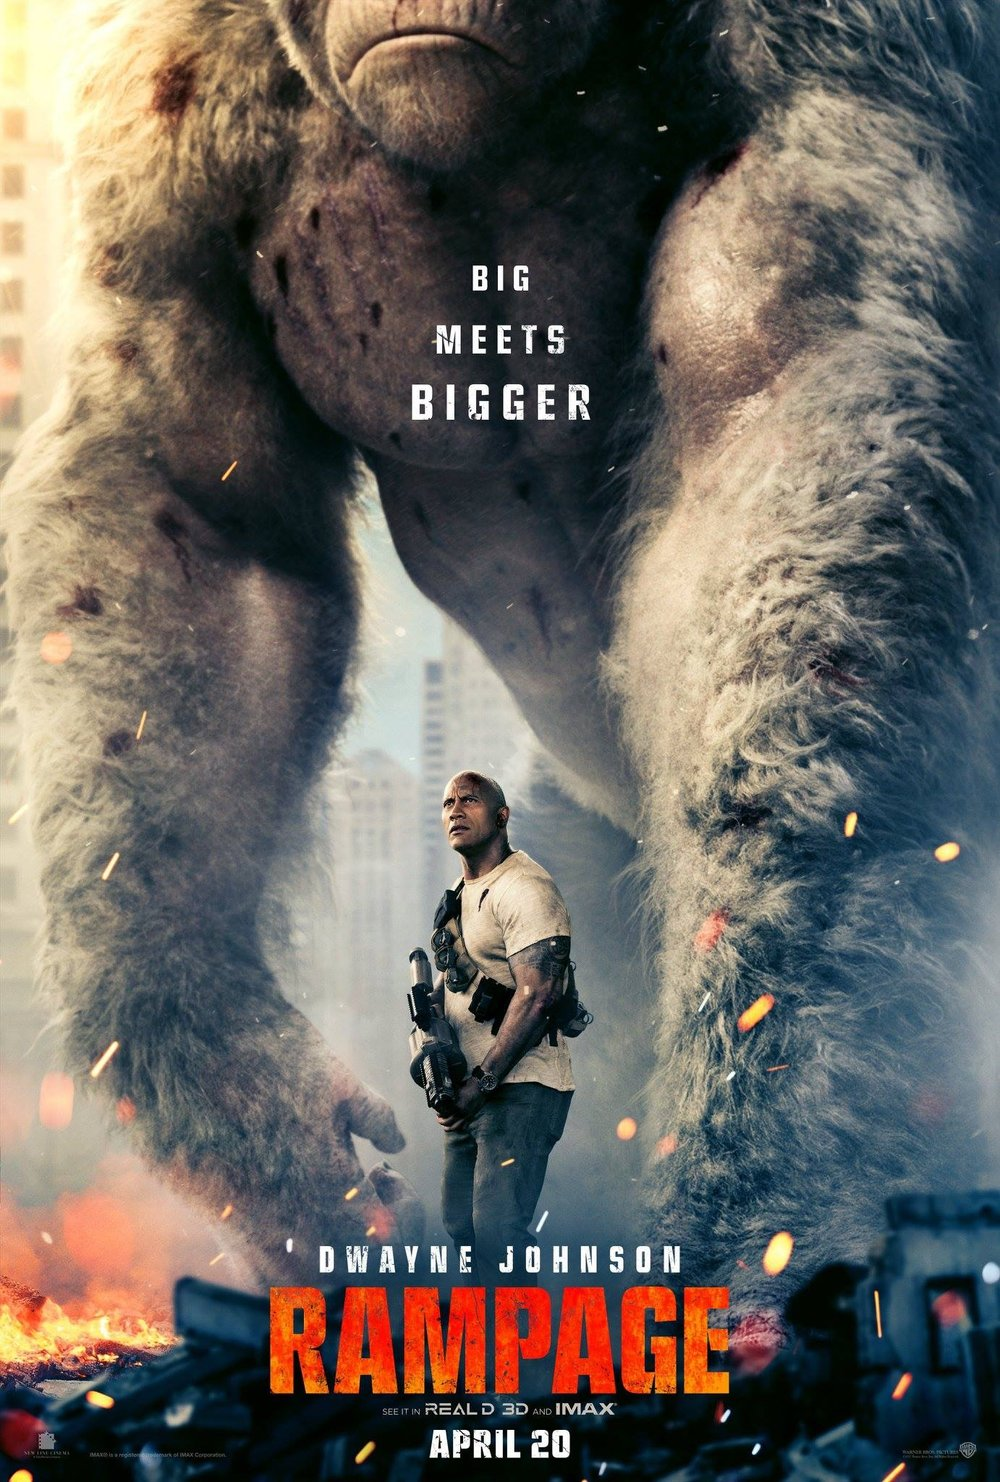 Official movie poster for Rampage